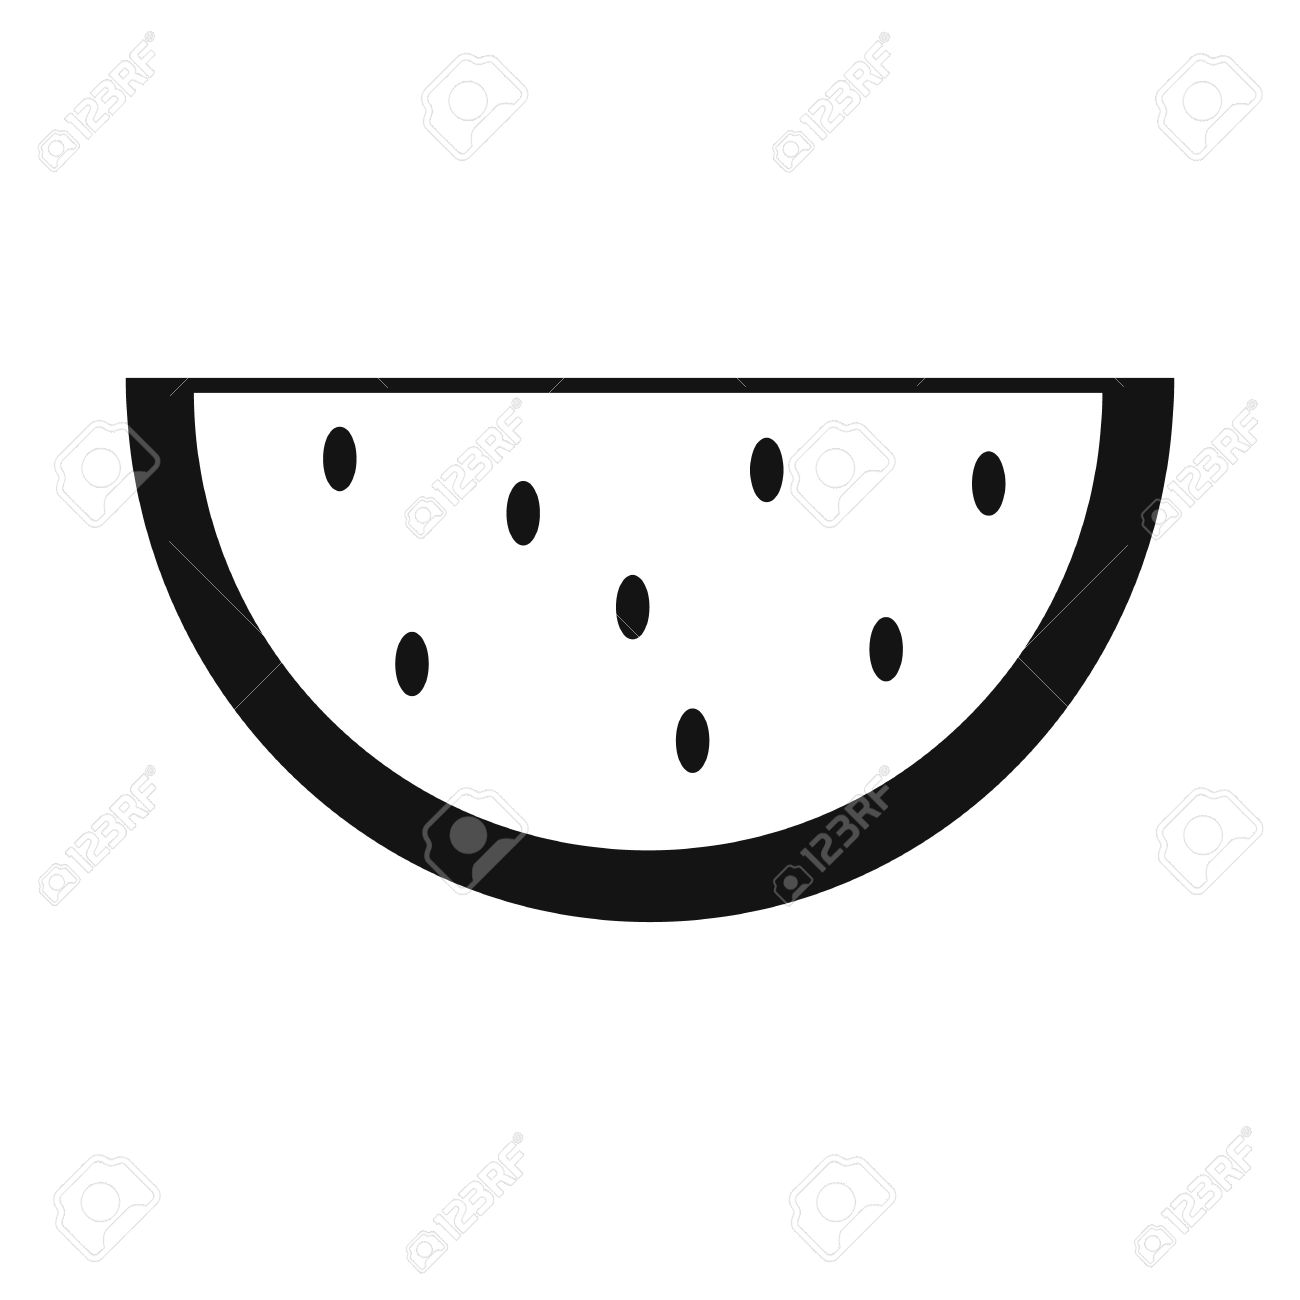 Slice Of Watermelon Simple Icon Isolated On White Background ... for Clipart Watermelon Black And White  131fsj